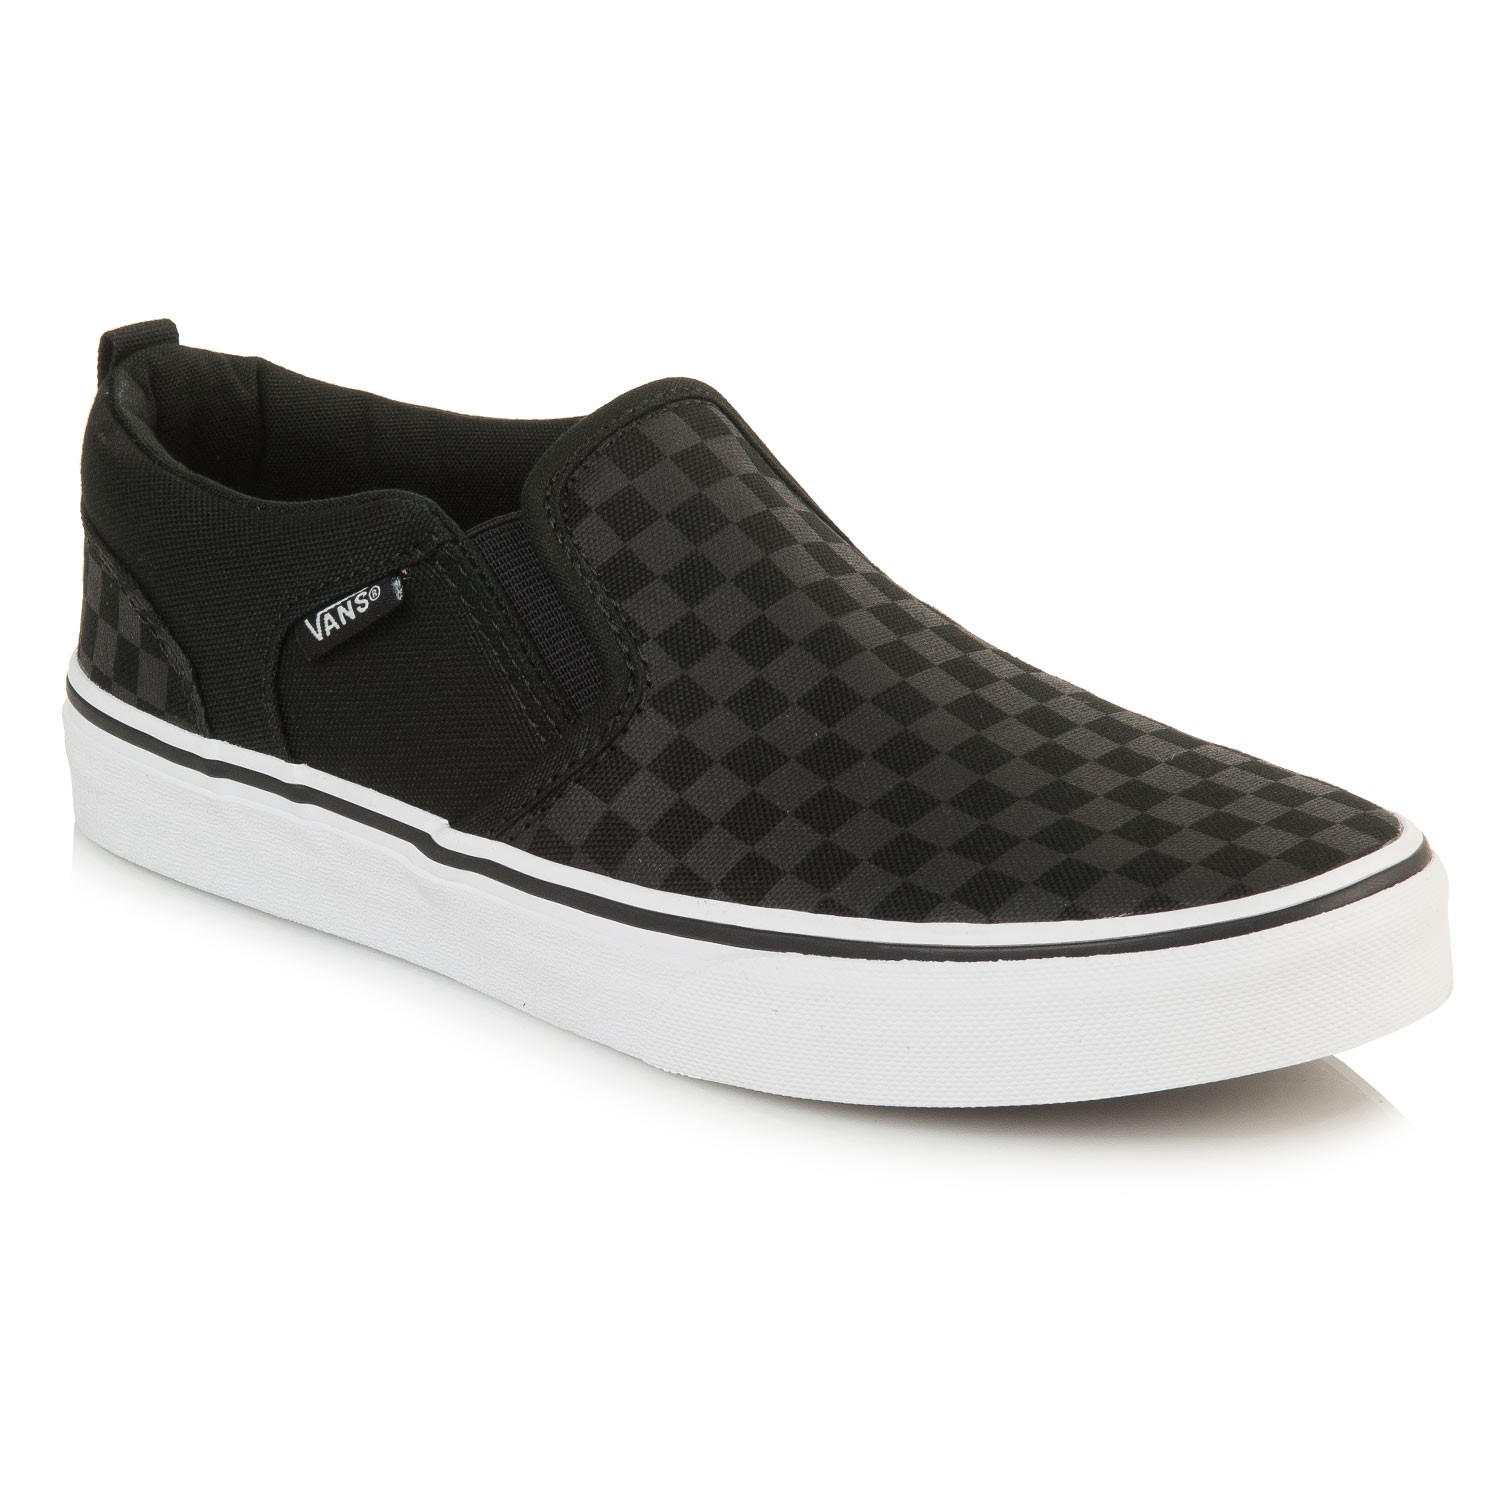 c08ded8801 Vans Asher. SOLD OUT - CANNOT BE ORDERED. Color  checker black black